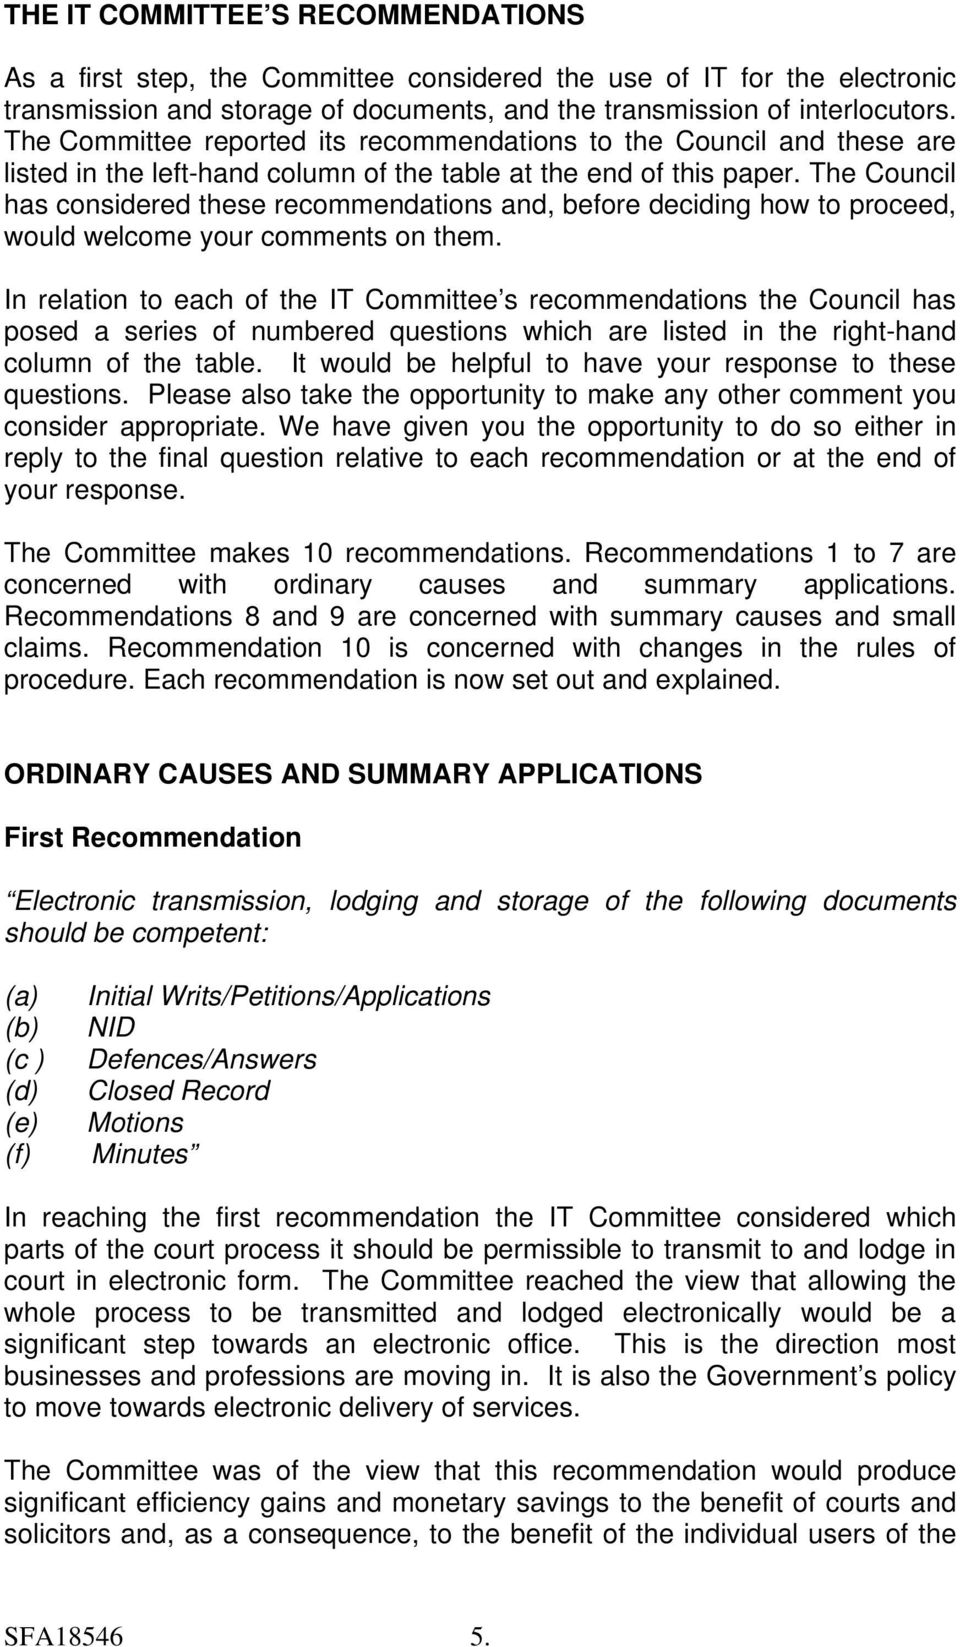 The Council has considered these recommendations and, before deciding how to proceed, would welcome your comments on them.